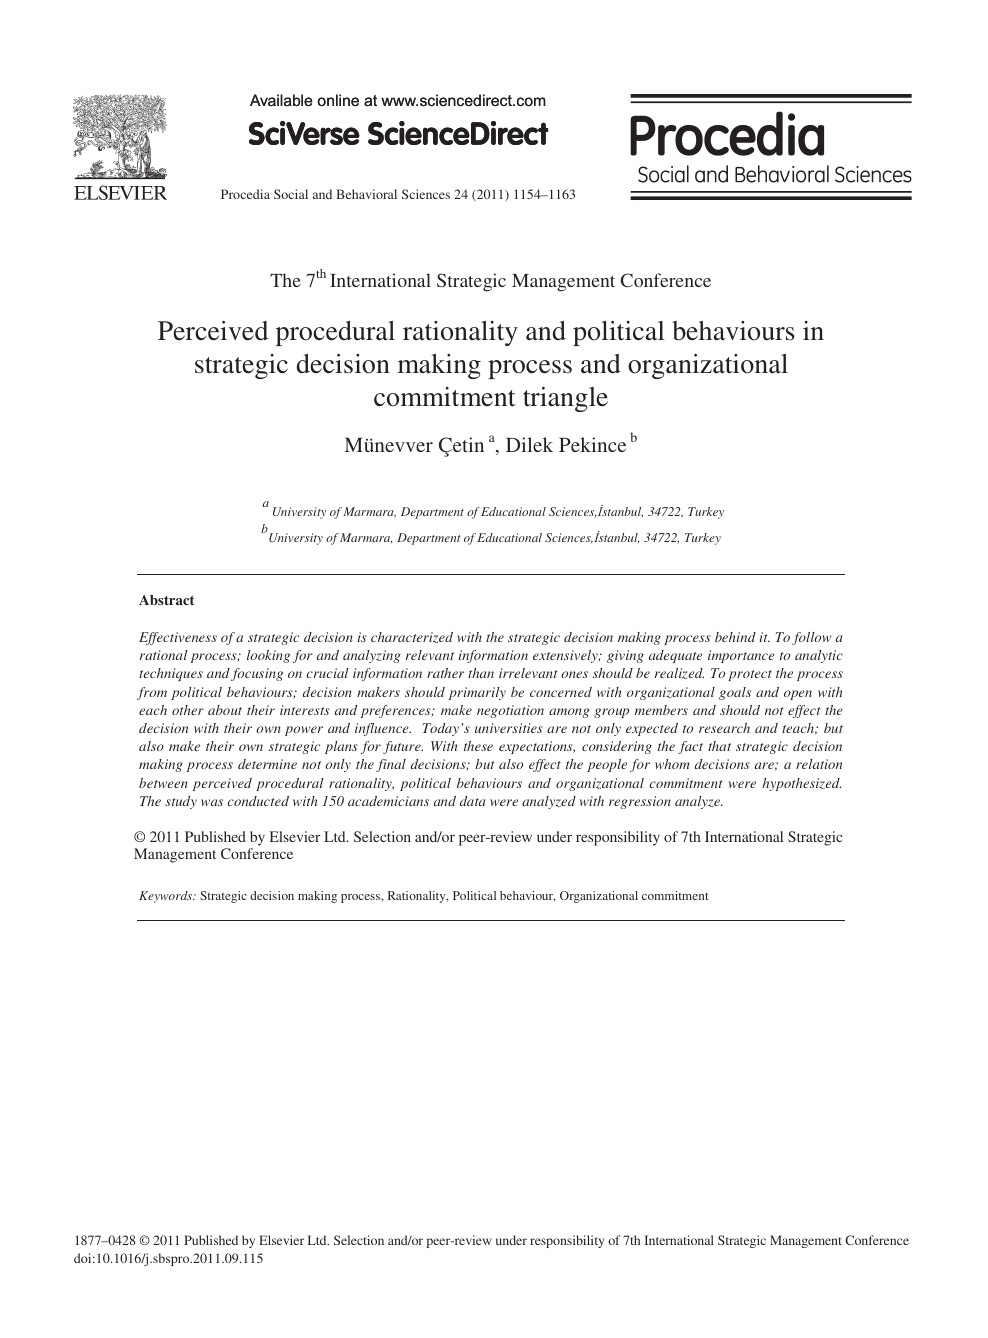 Perceived procedural rationality and political behaviours in